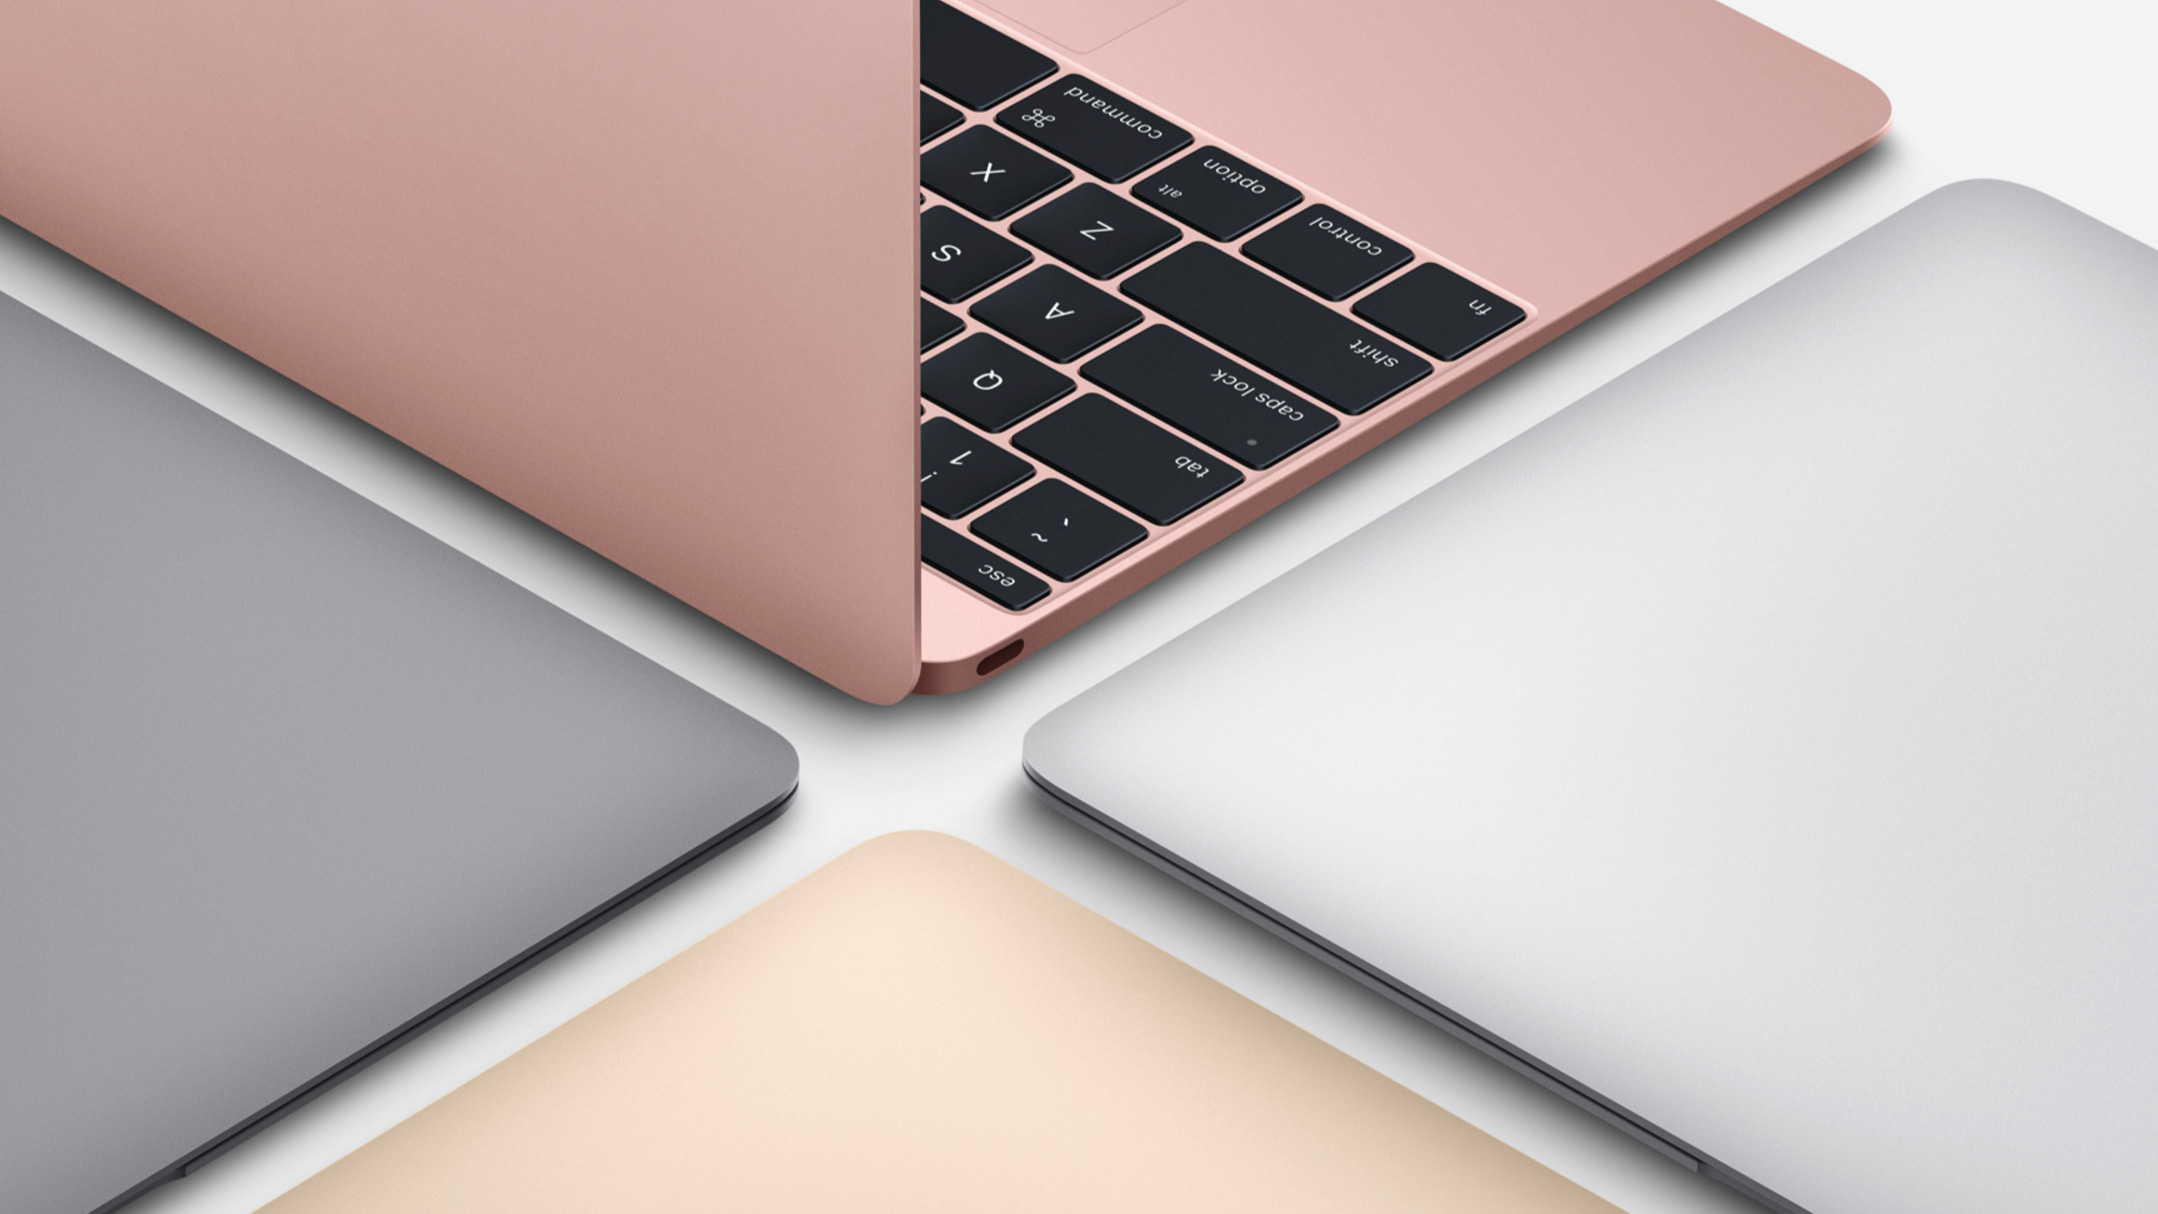 Apple Updates New MacBook, But Doesn't Address Biggest Issues